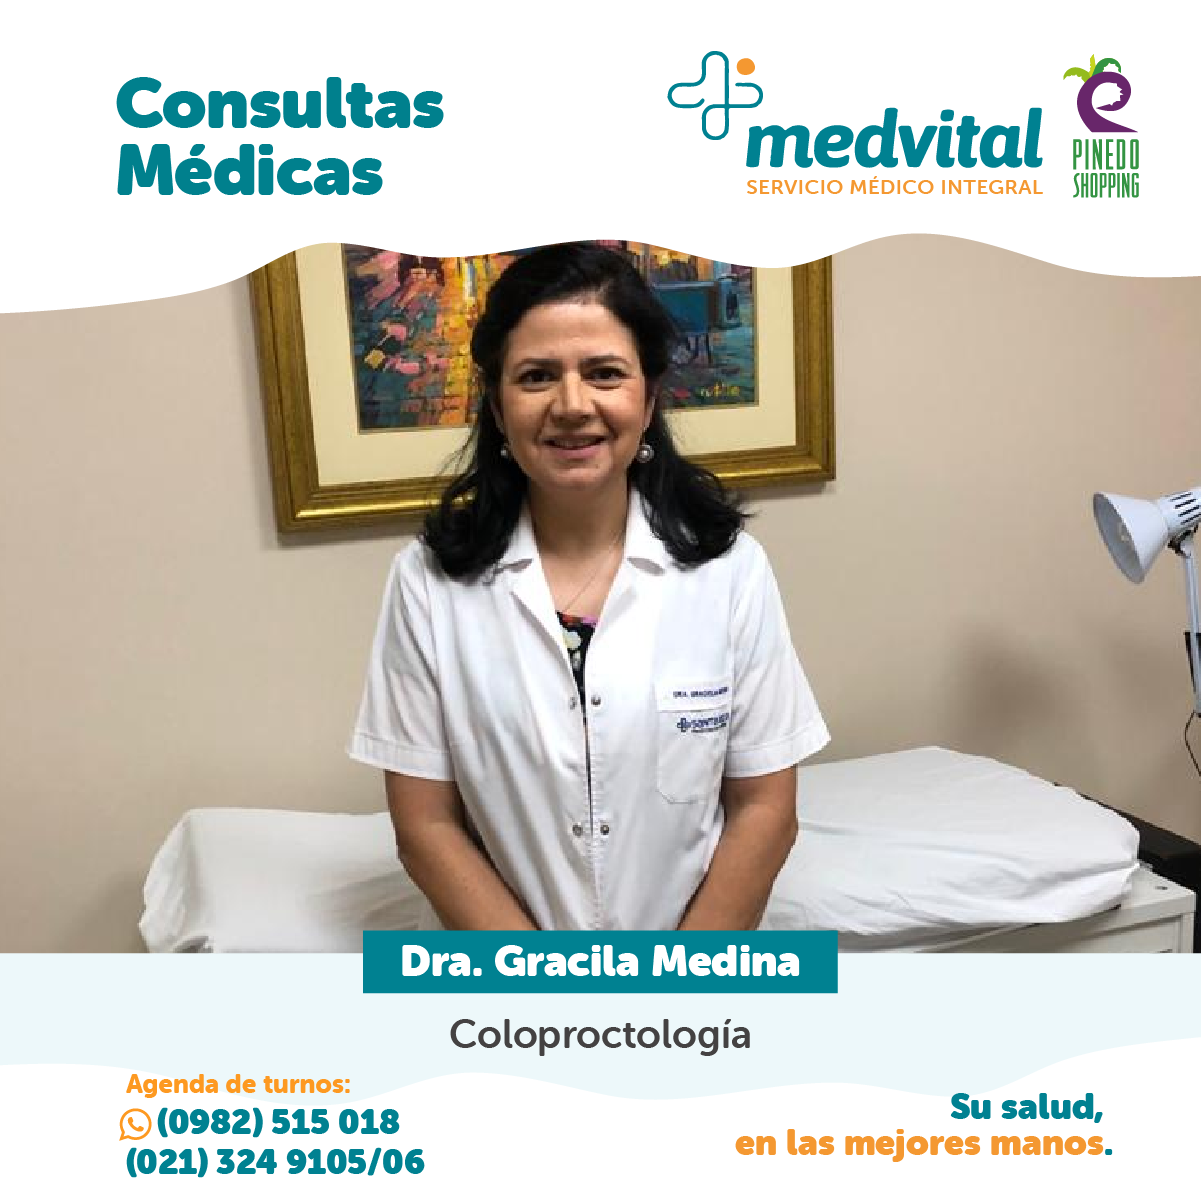 Doctores medvital-13